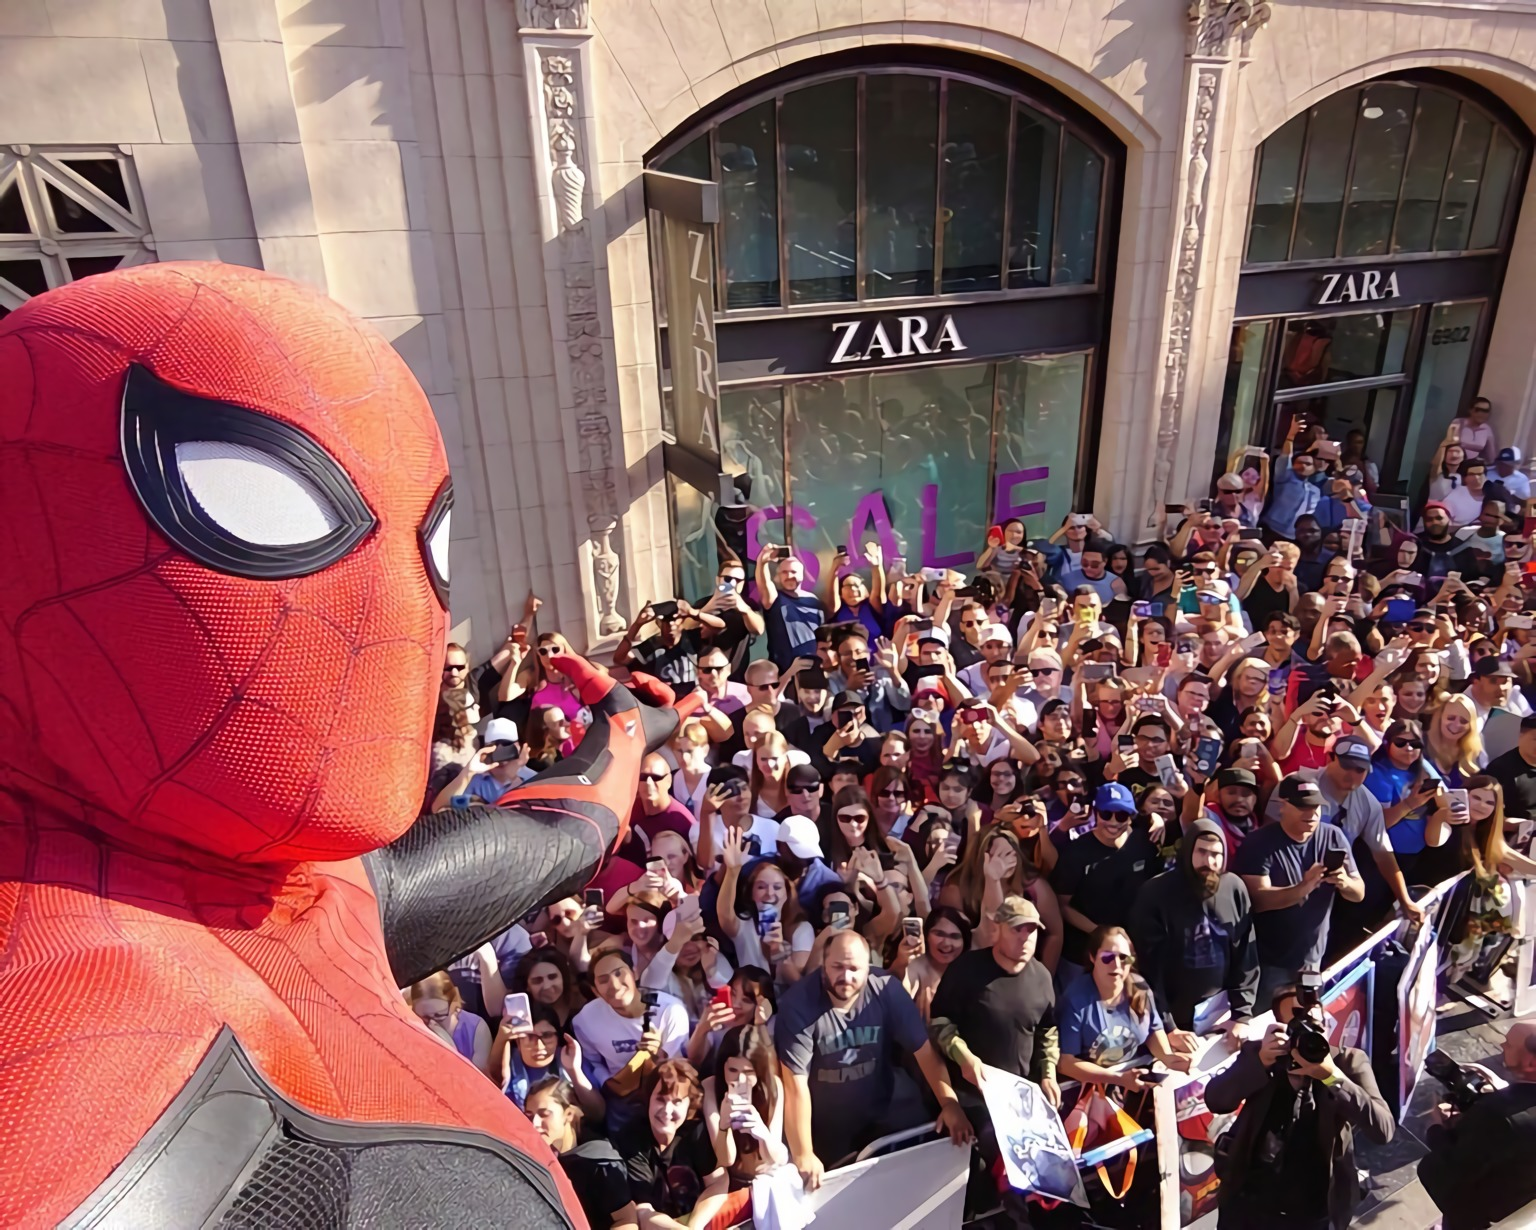 Spider-Man: Far From Home premiere: Tom Holland, Jake Gyllenhaal, Zendaya and more strut their stuff on the red carpet for the latest Marvel Studios film